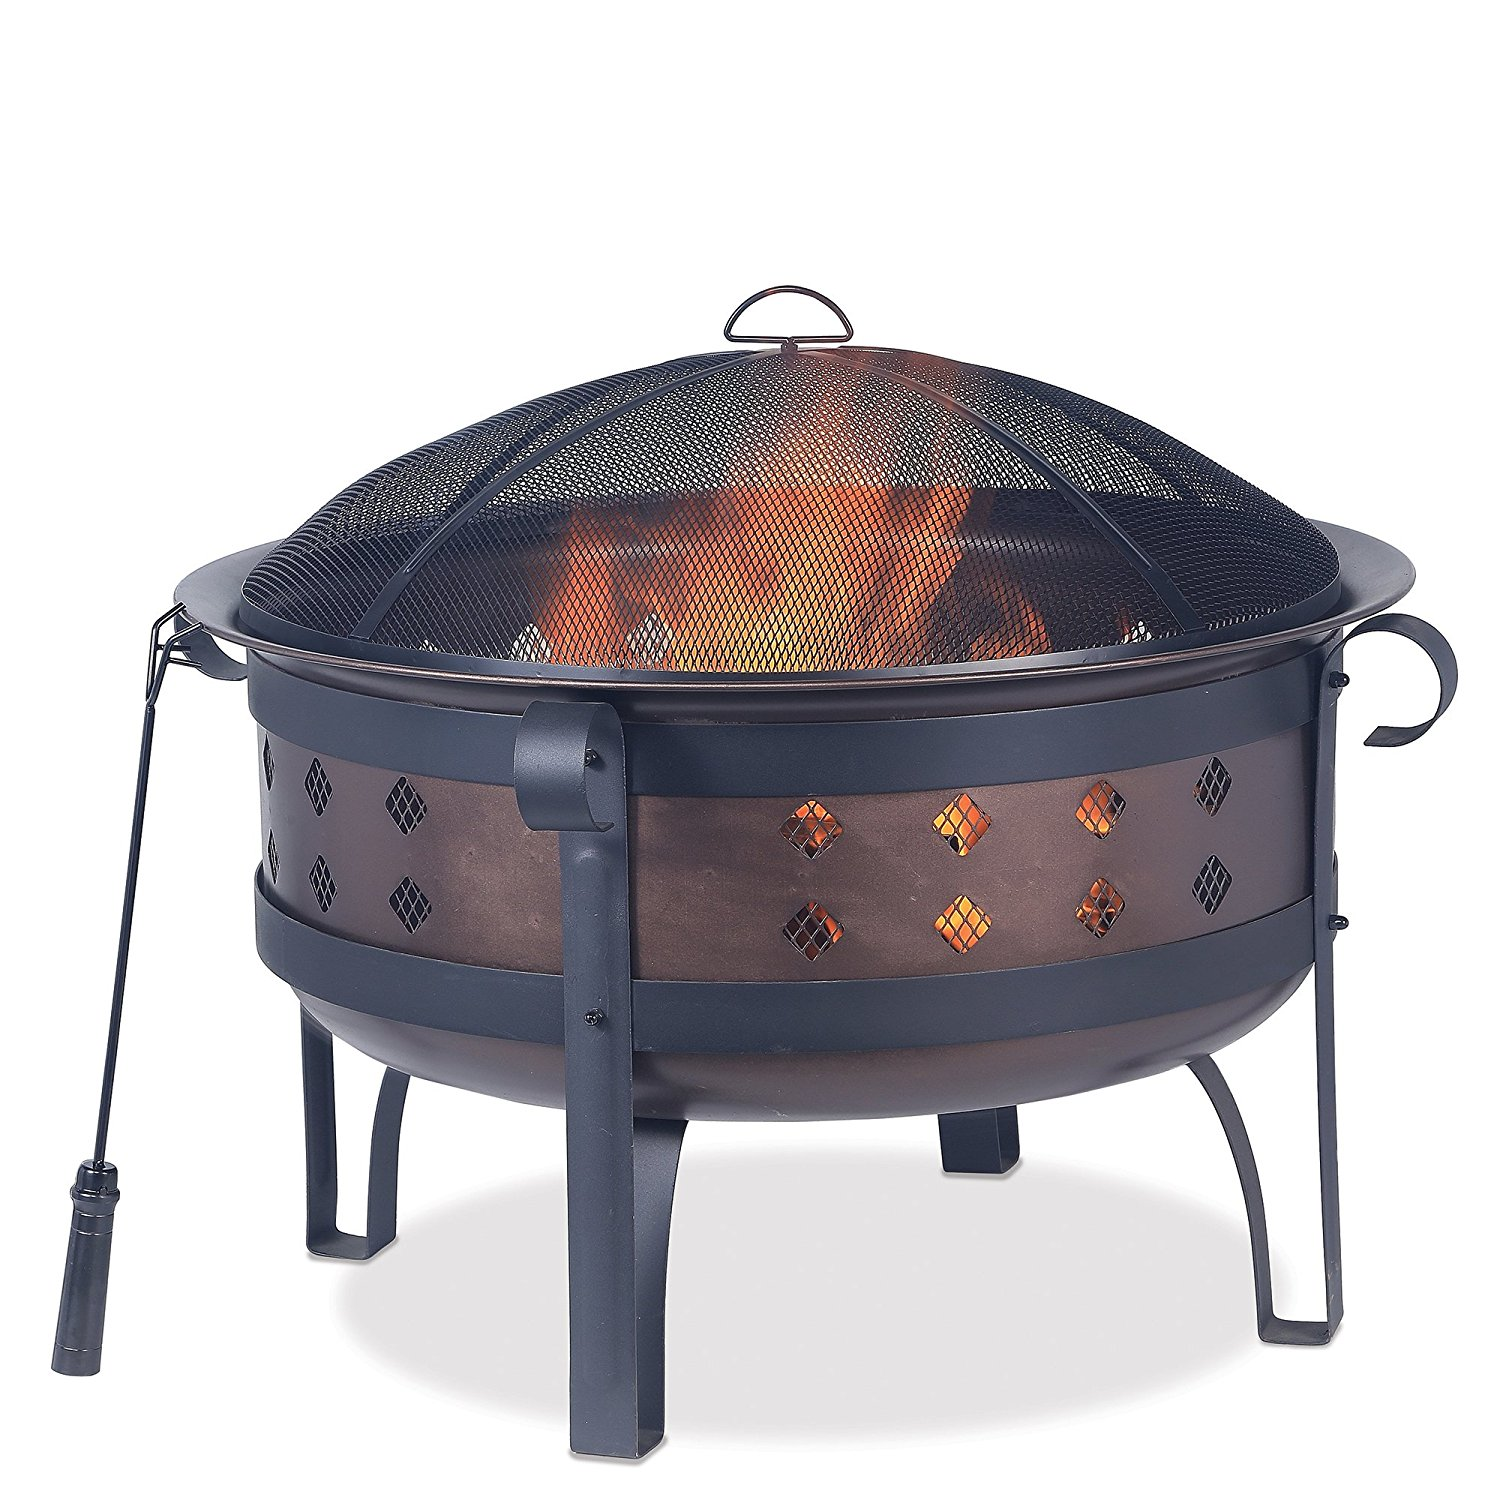 34 inch Steel/Brushed Copper Wood Burning Outdoor Firebowl